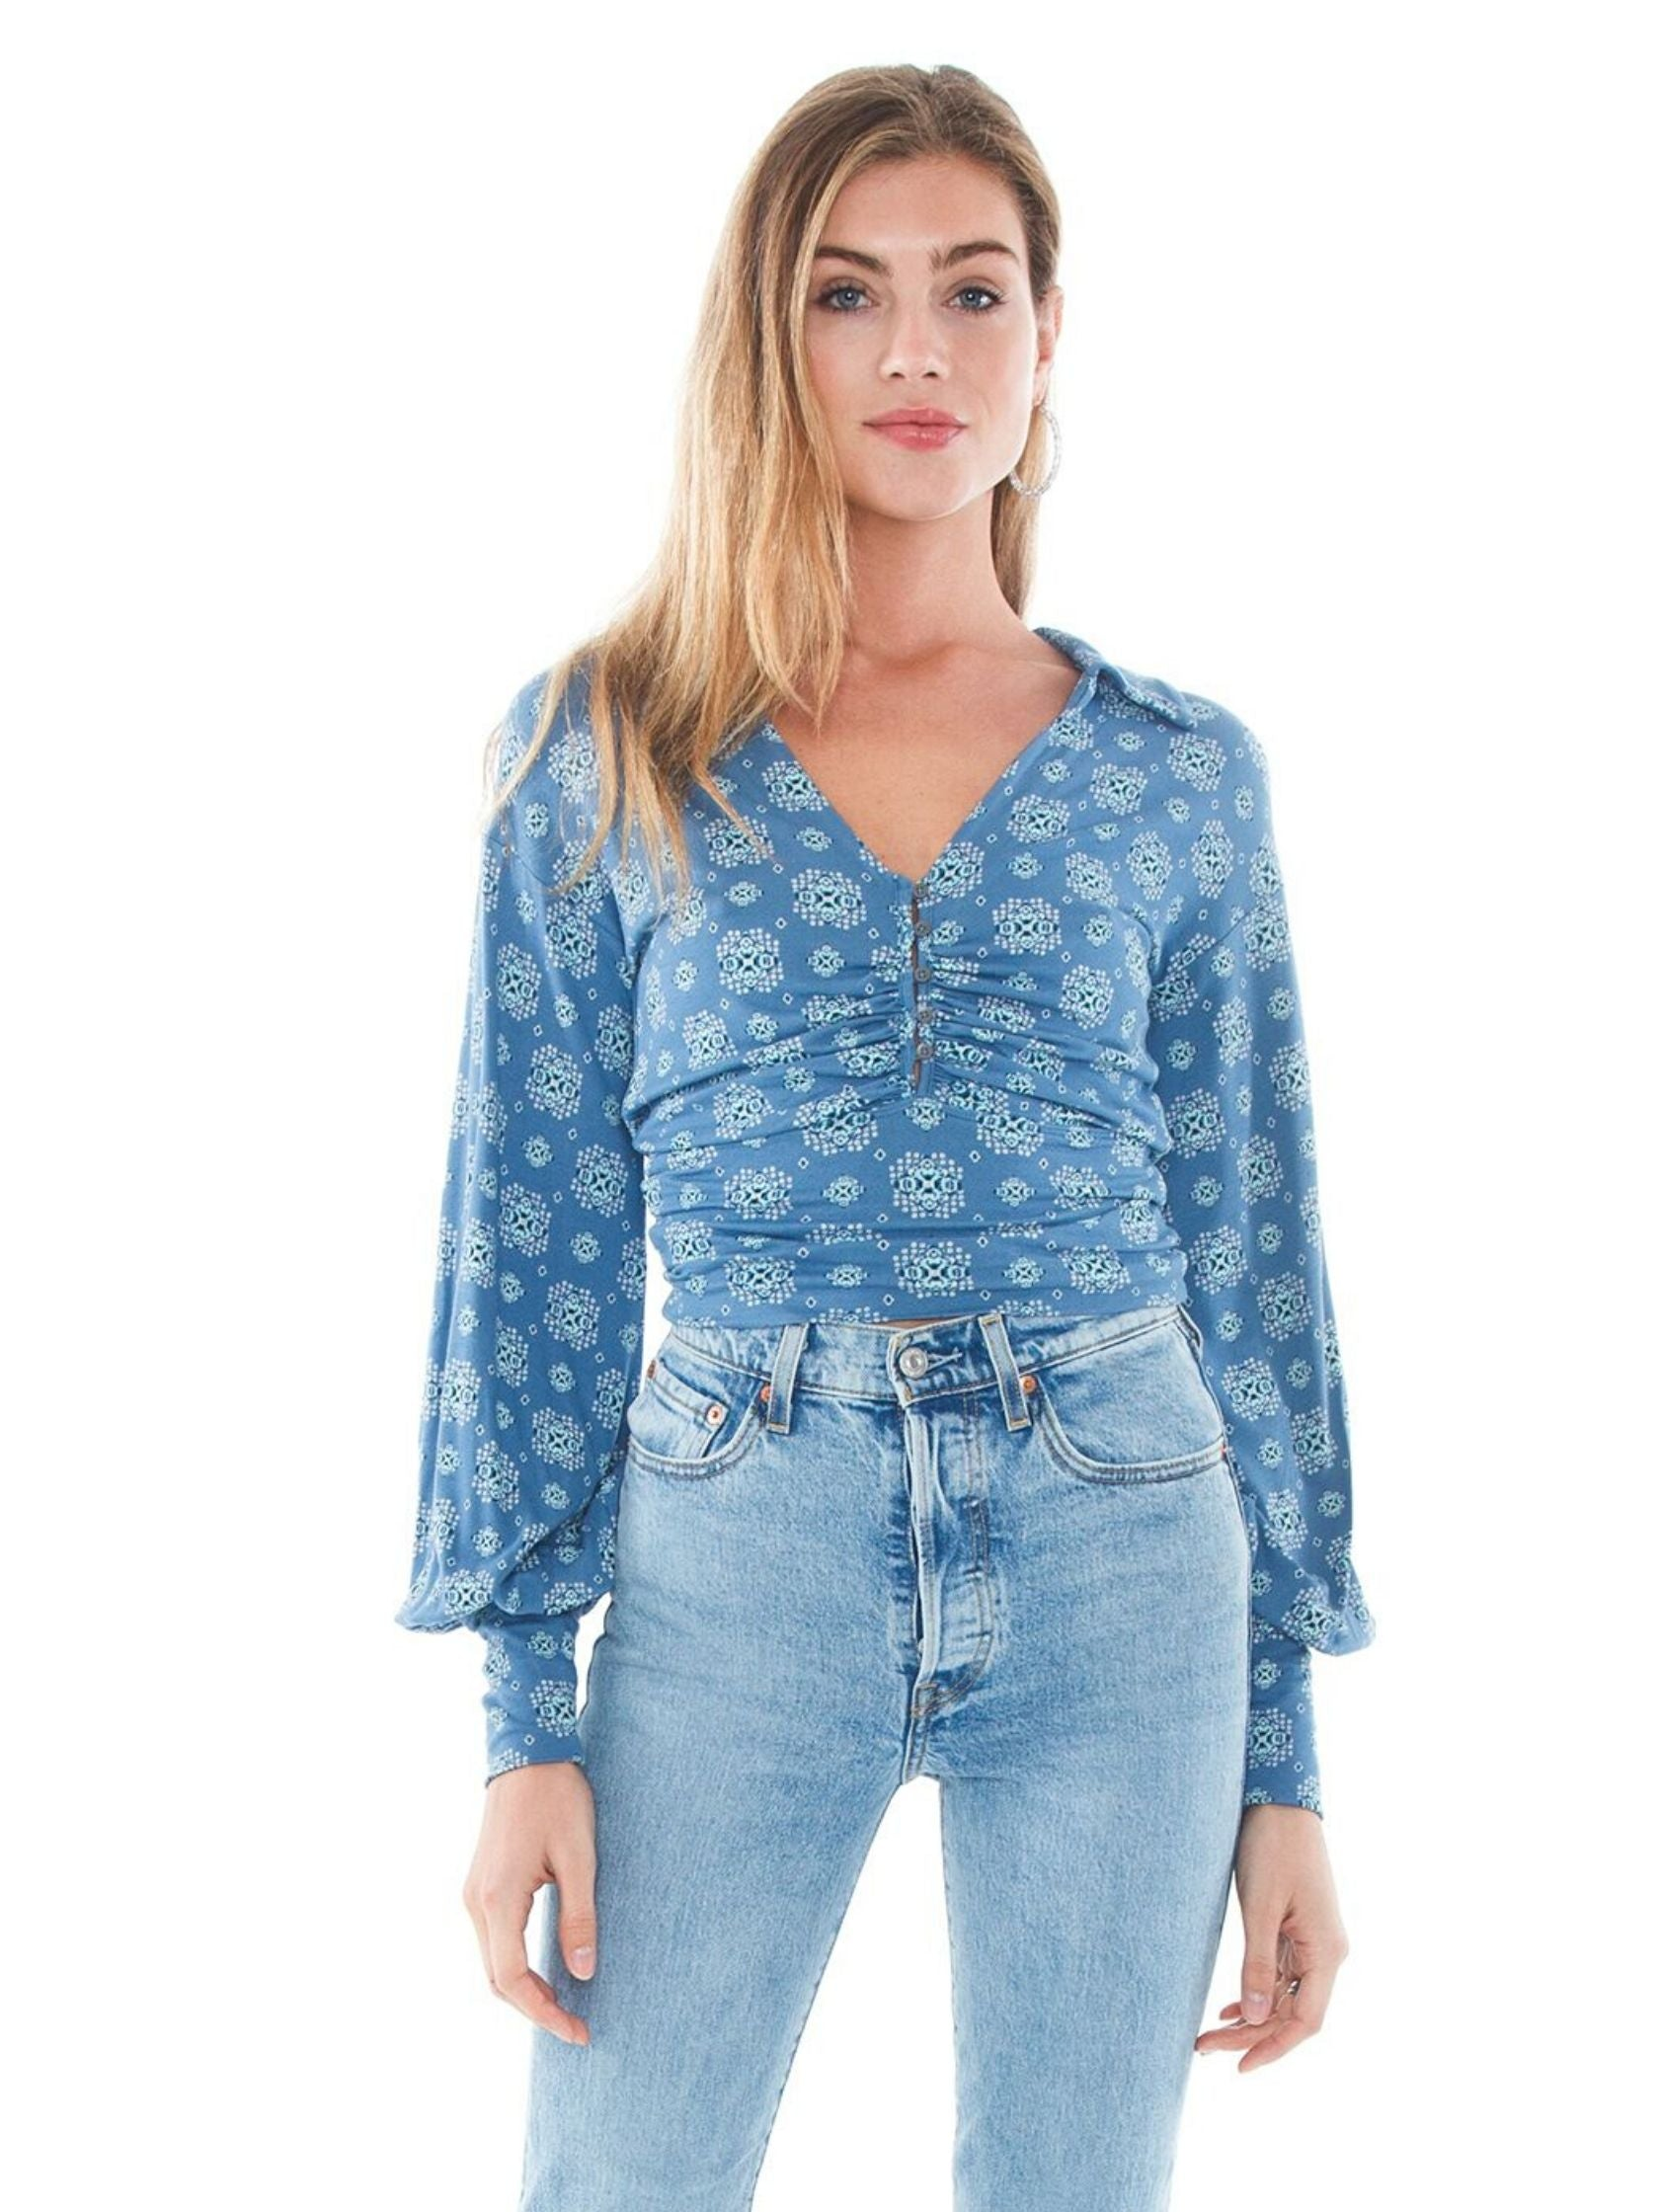 Woman wearing a top rental from Free People called Sydney's Printed Top